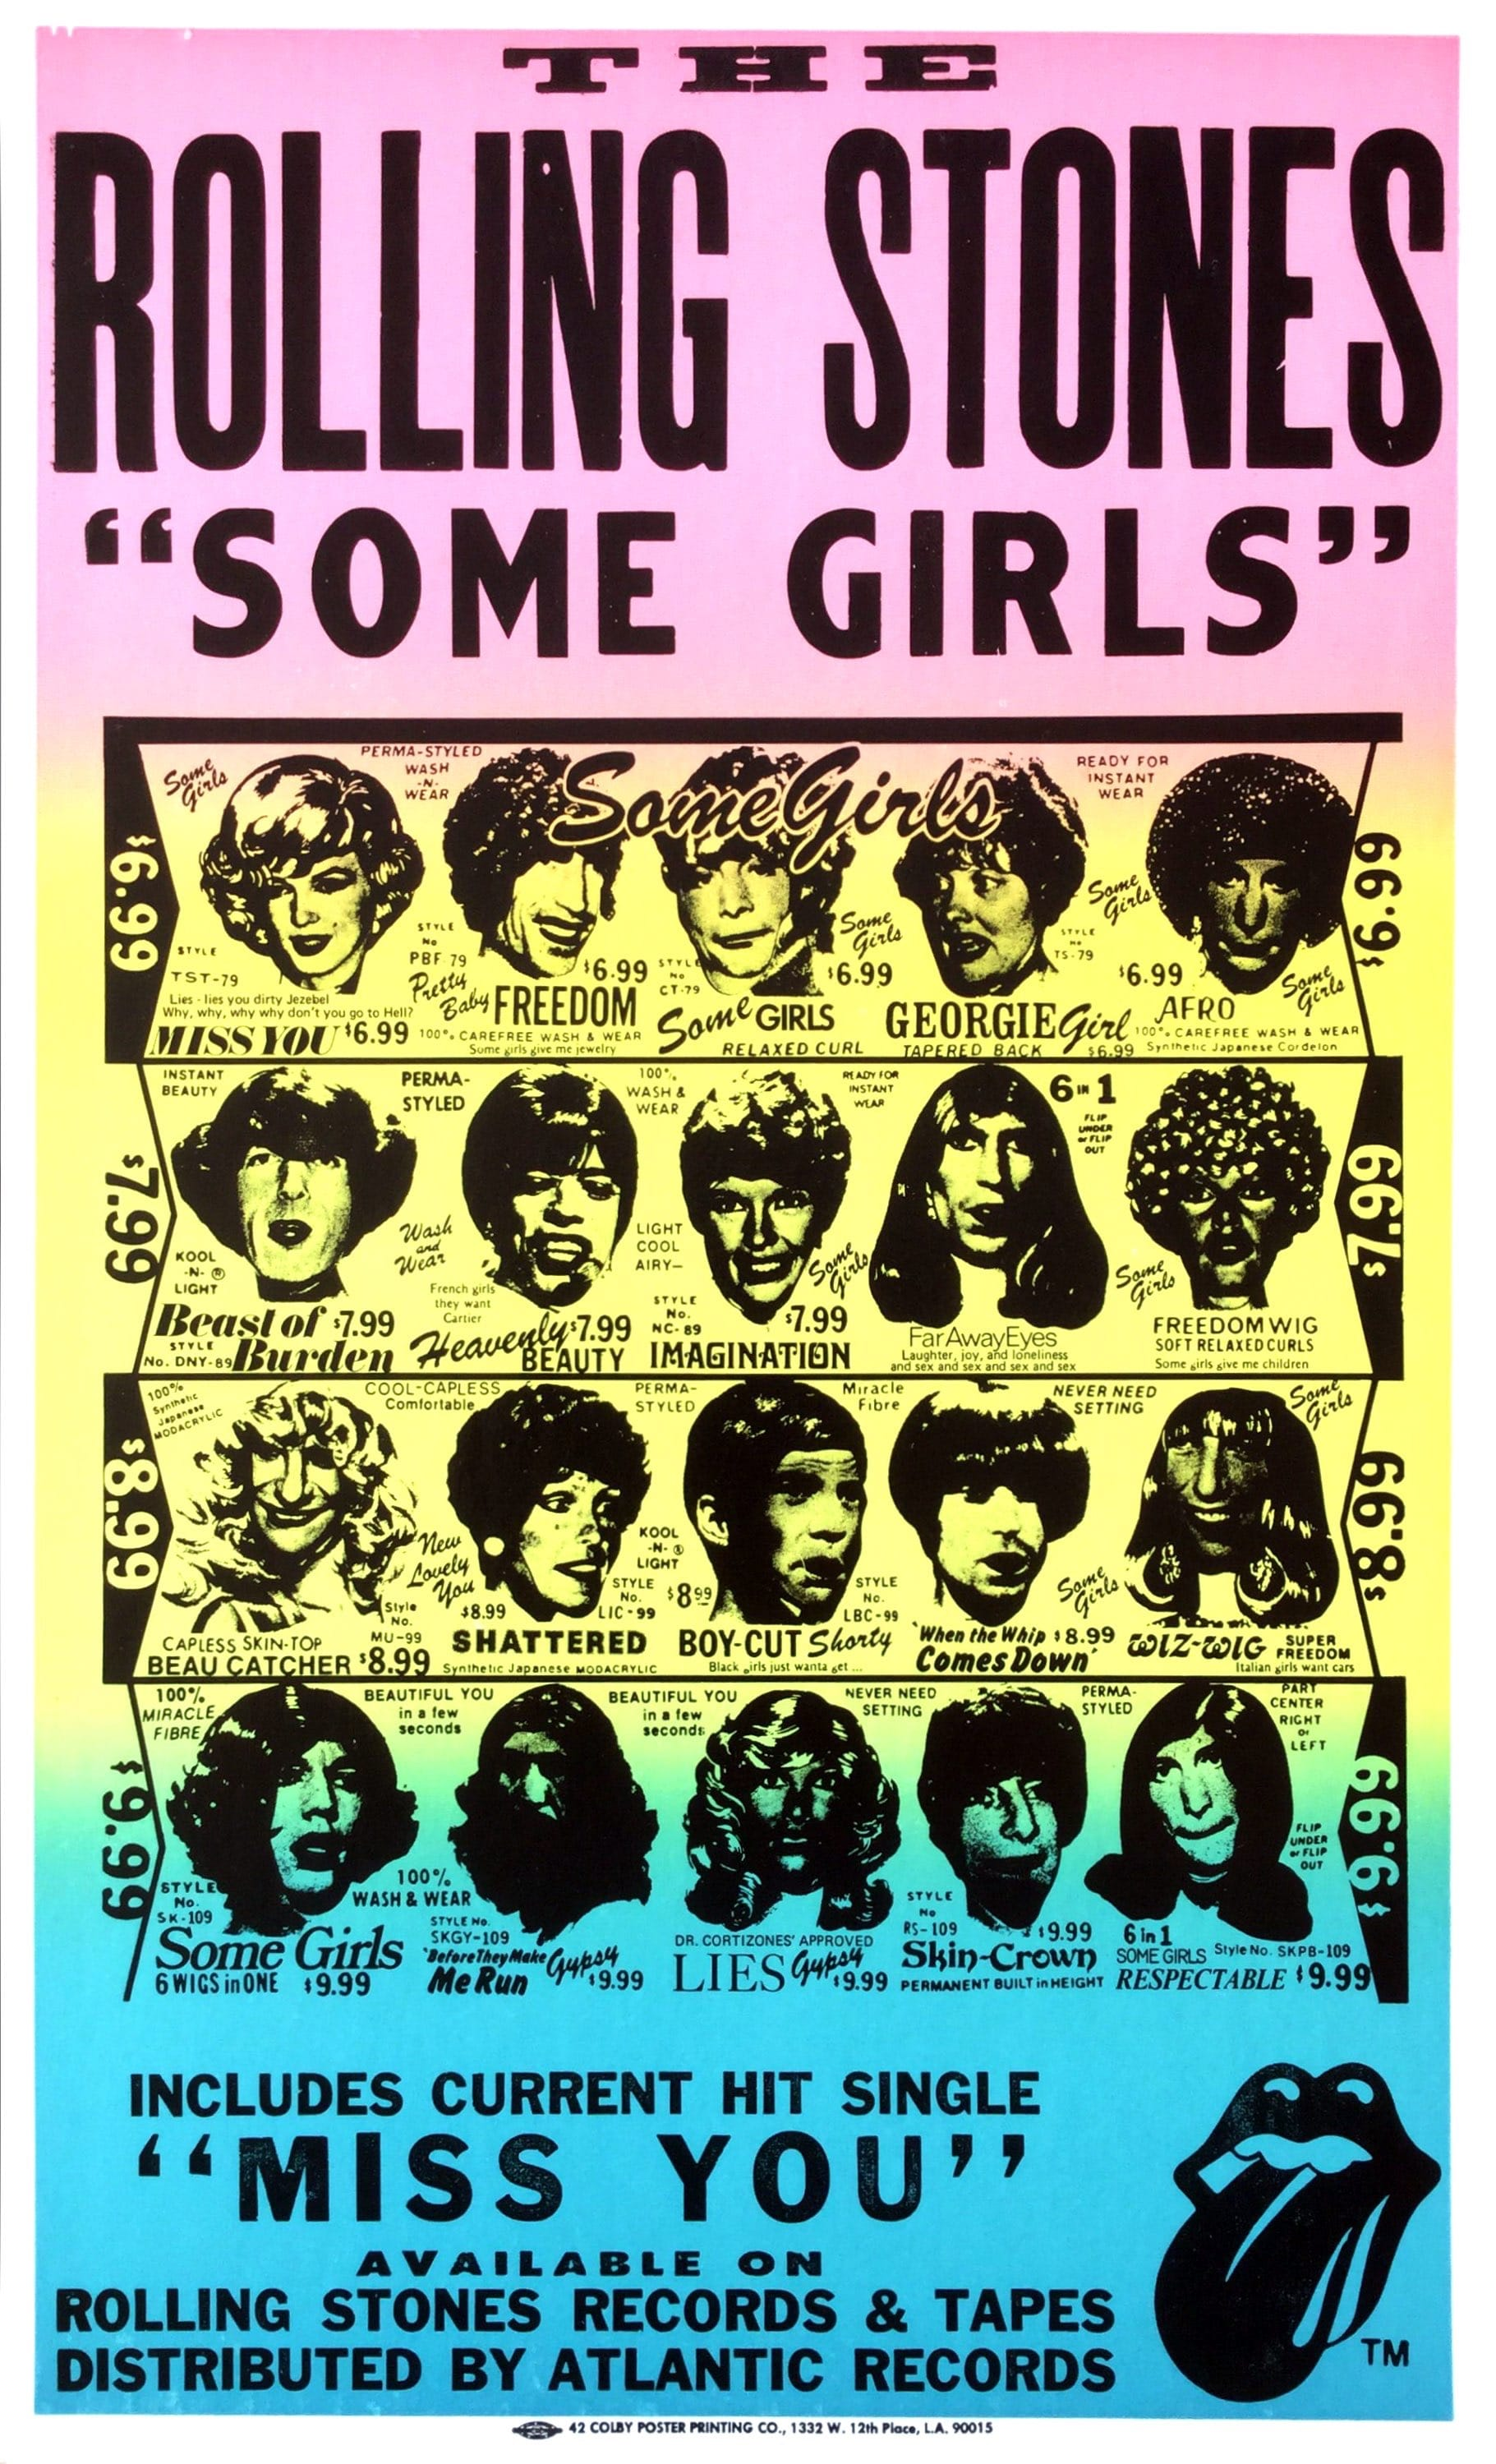 The Rolling Stones Rare 1978 Some Girls Boxing Style